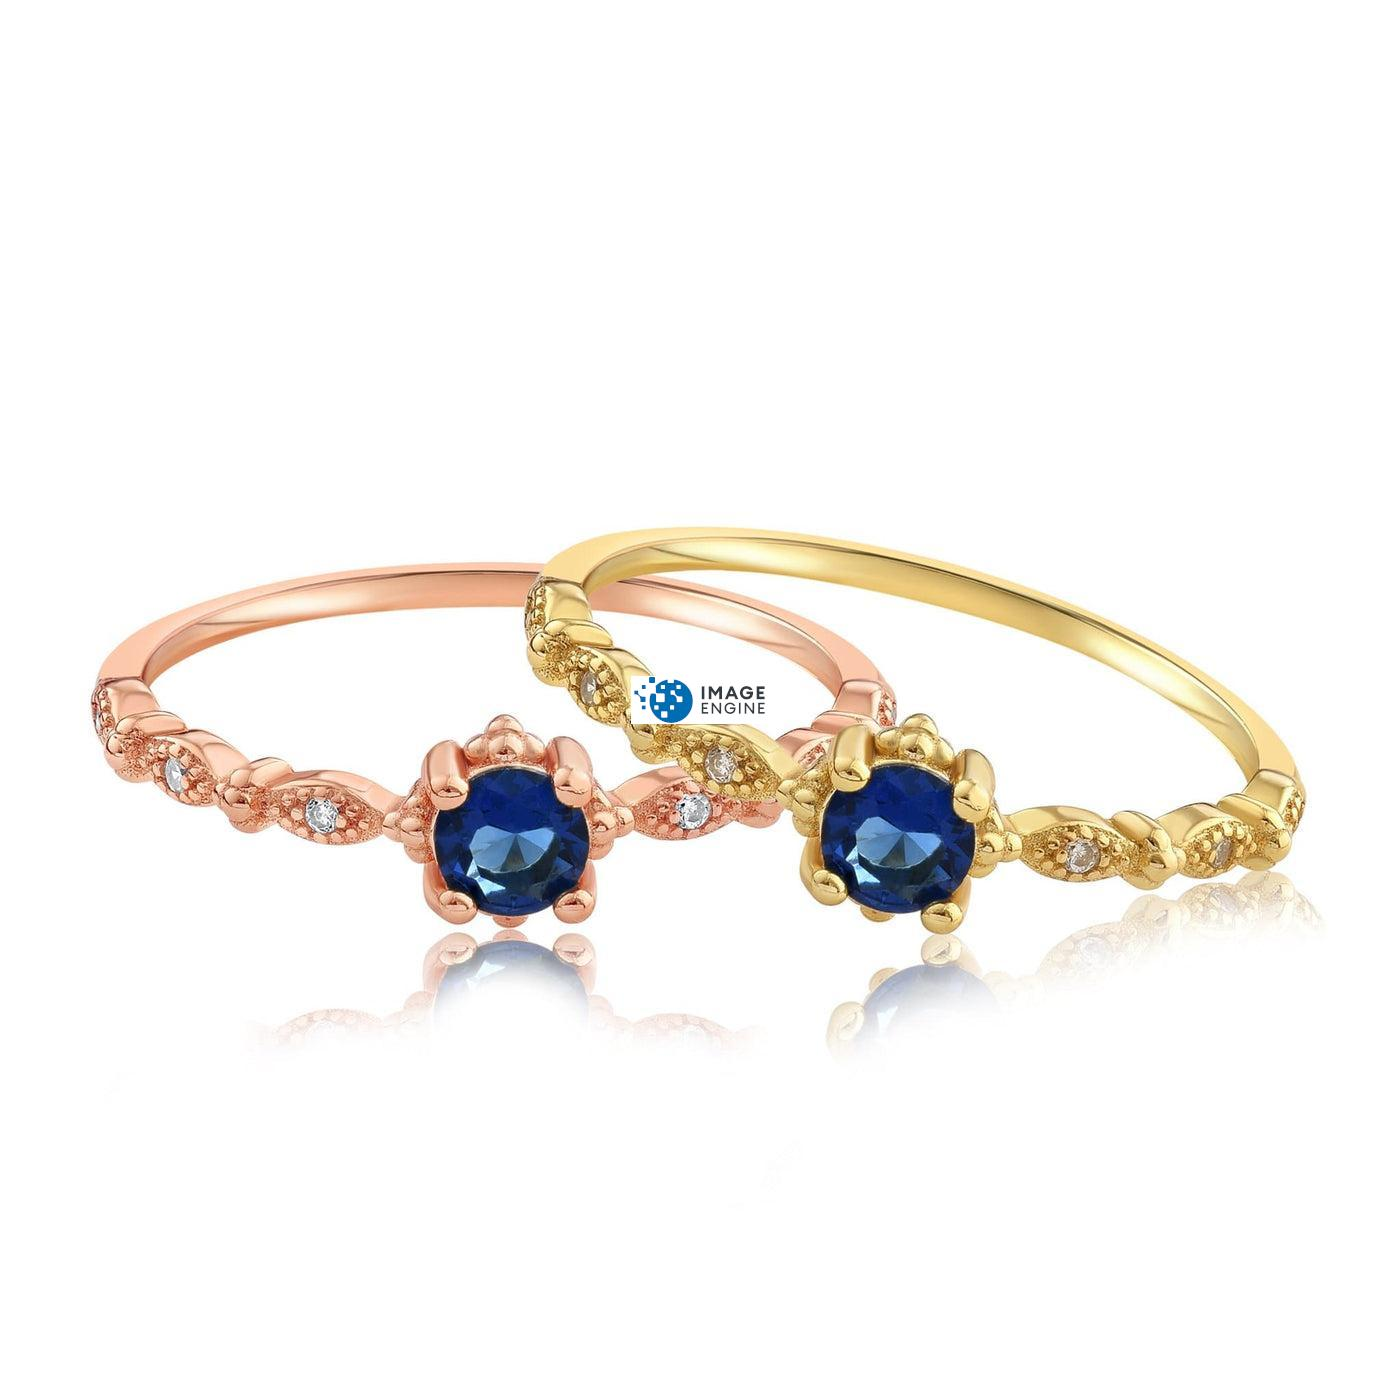 Garen Ring Blue Gemstone - Front View Side by Side - 18K Rose Gold Vermeil and 18K Yellow Gold Vermeil